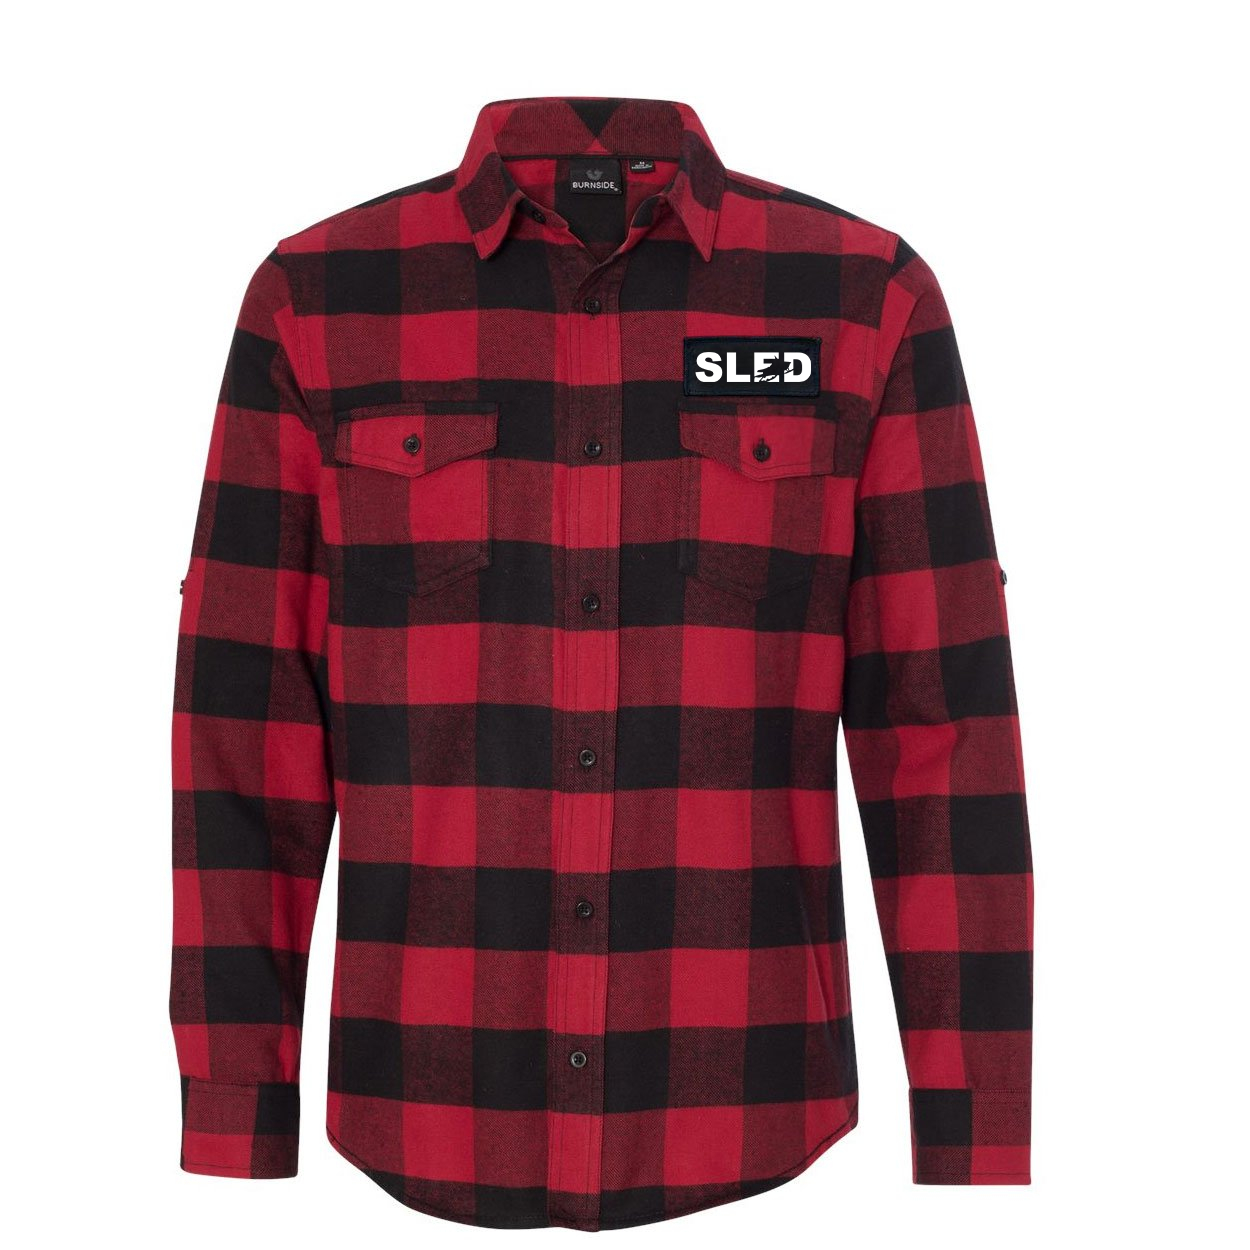 Sled Snowmobile Logo Classic Unisex Long Sleeve Woven Patch Flannel Shirt Red/Black Buffalo (White Logo)